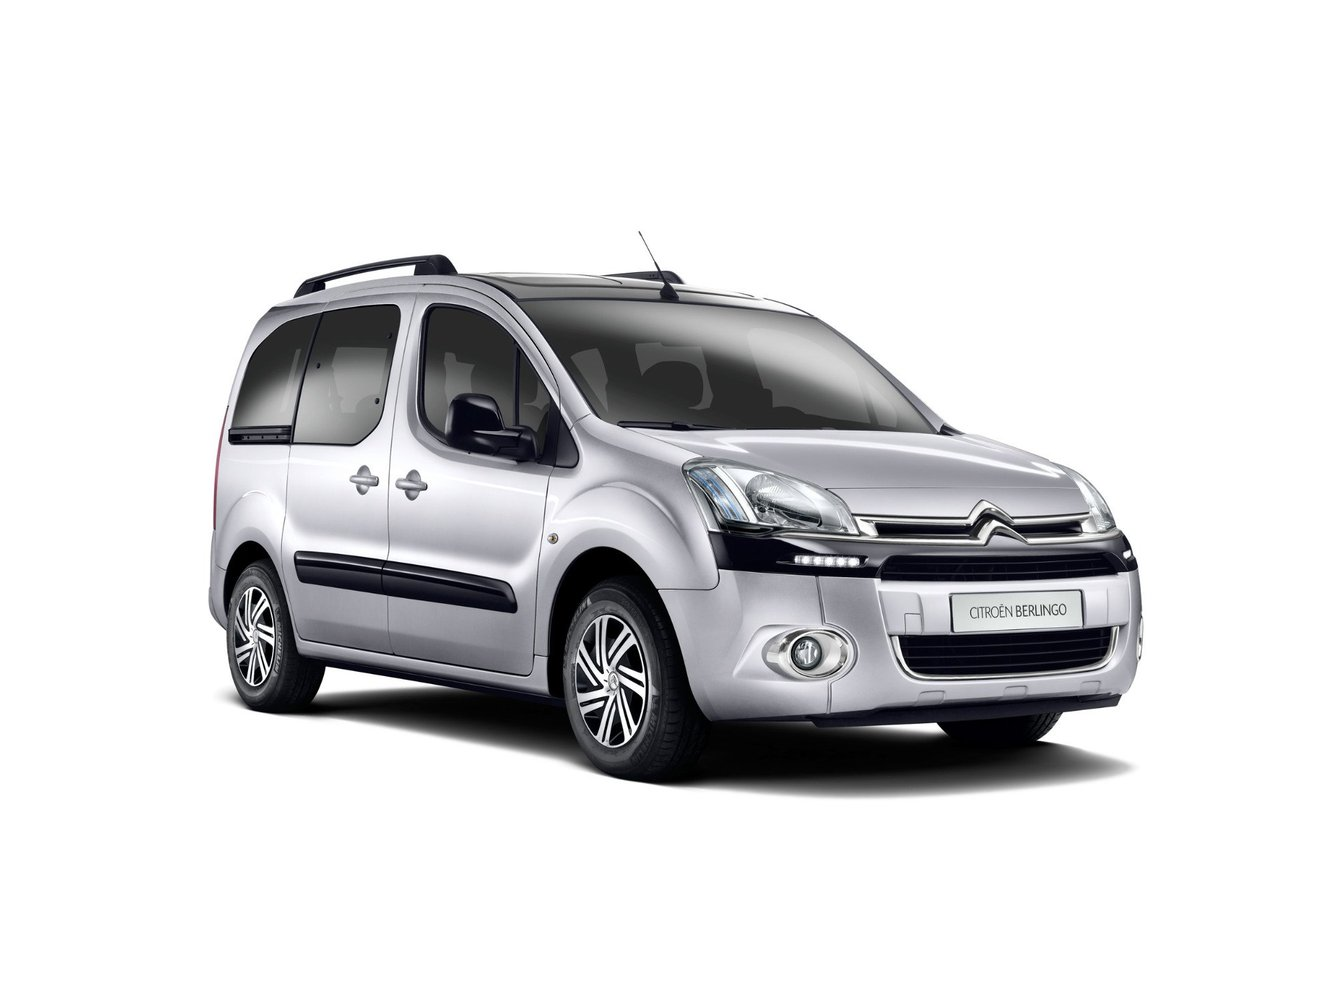 Citroen Berlingo 2012 - 2015